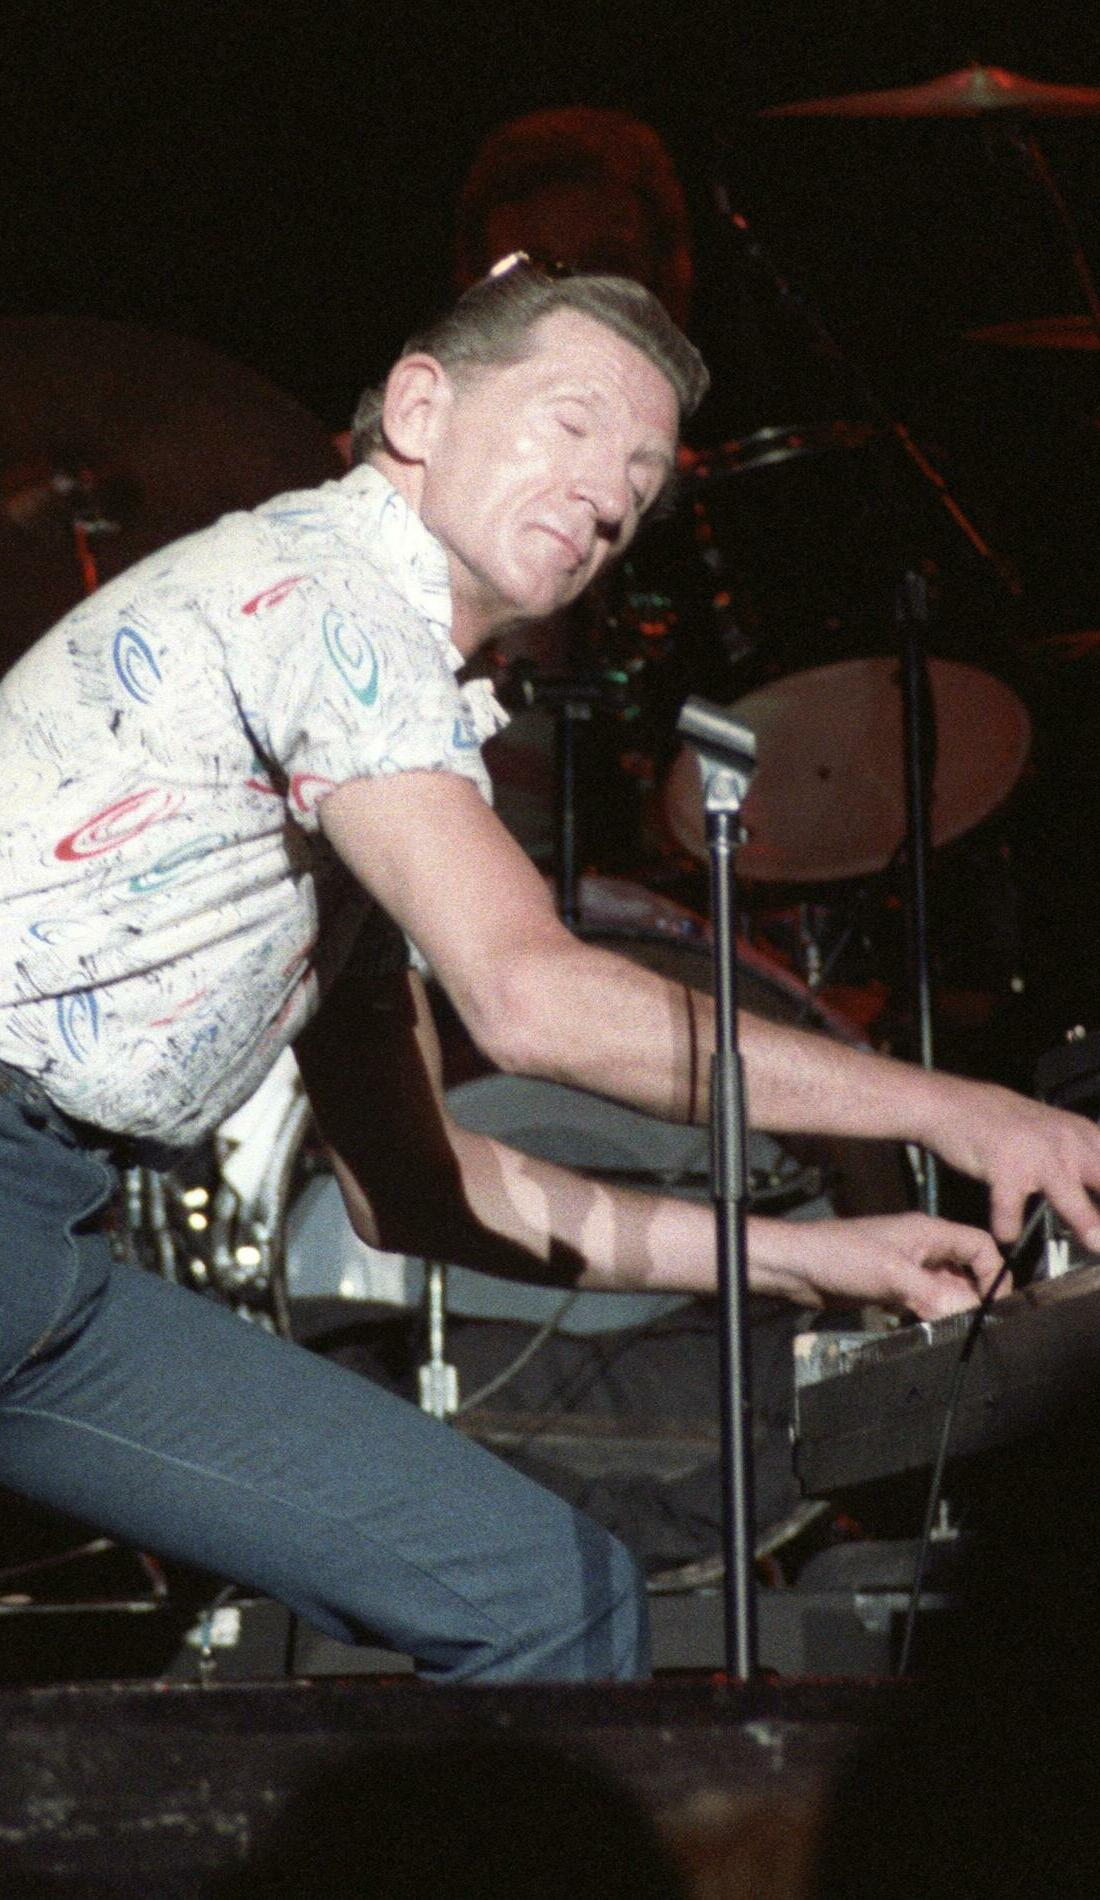 A Jerry Lee Lewis live event